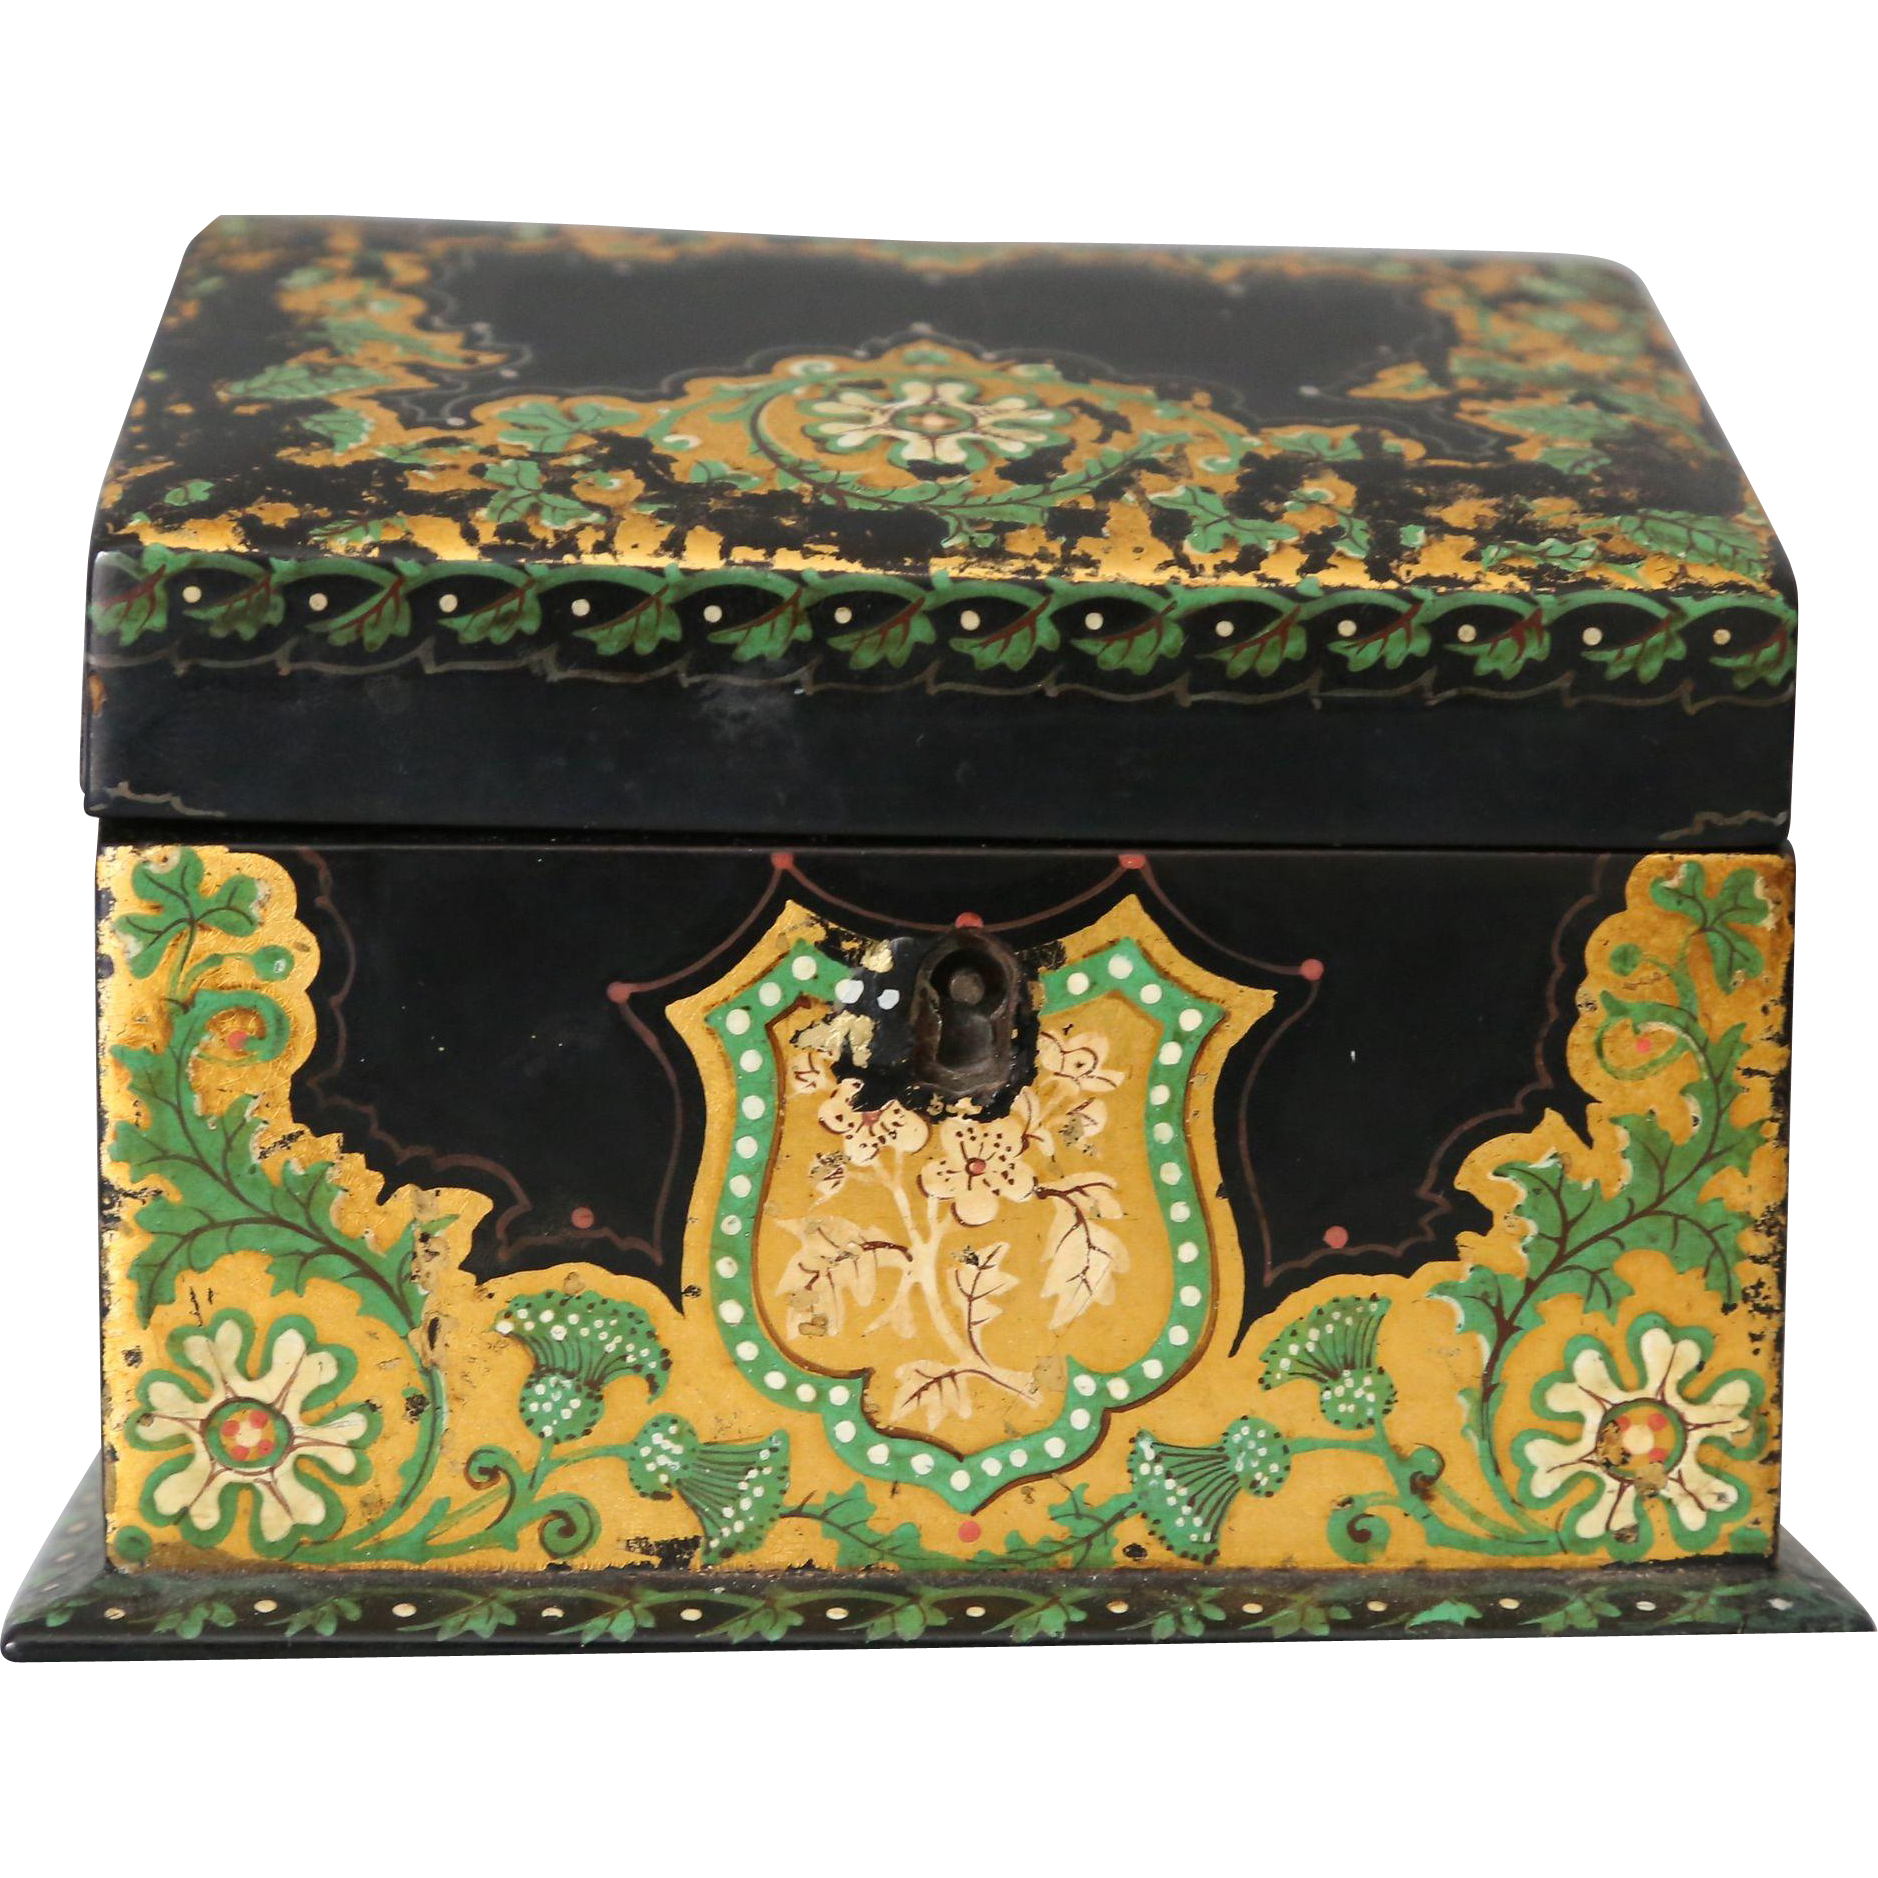 antique victorian papier mache desk box container from englandscountrytreasures on ruby lane. Black Bedroom Furniture Sets. Home Design Ideas